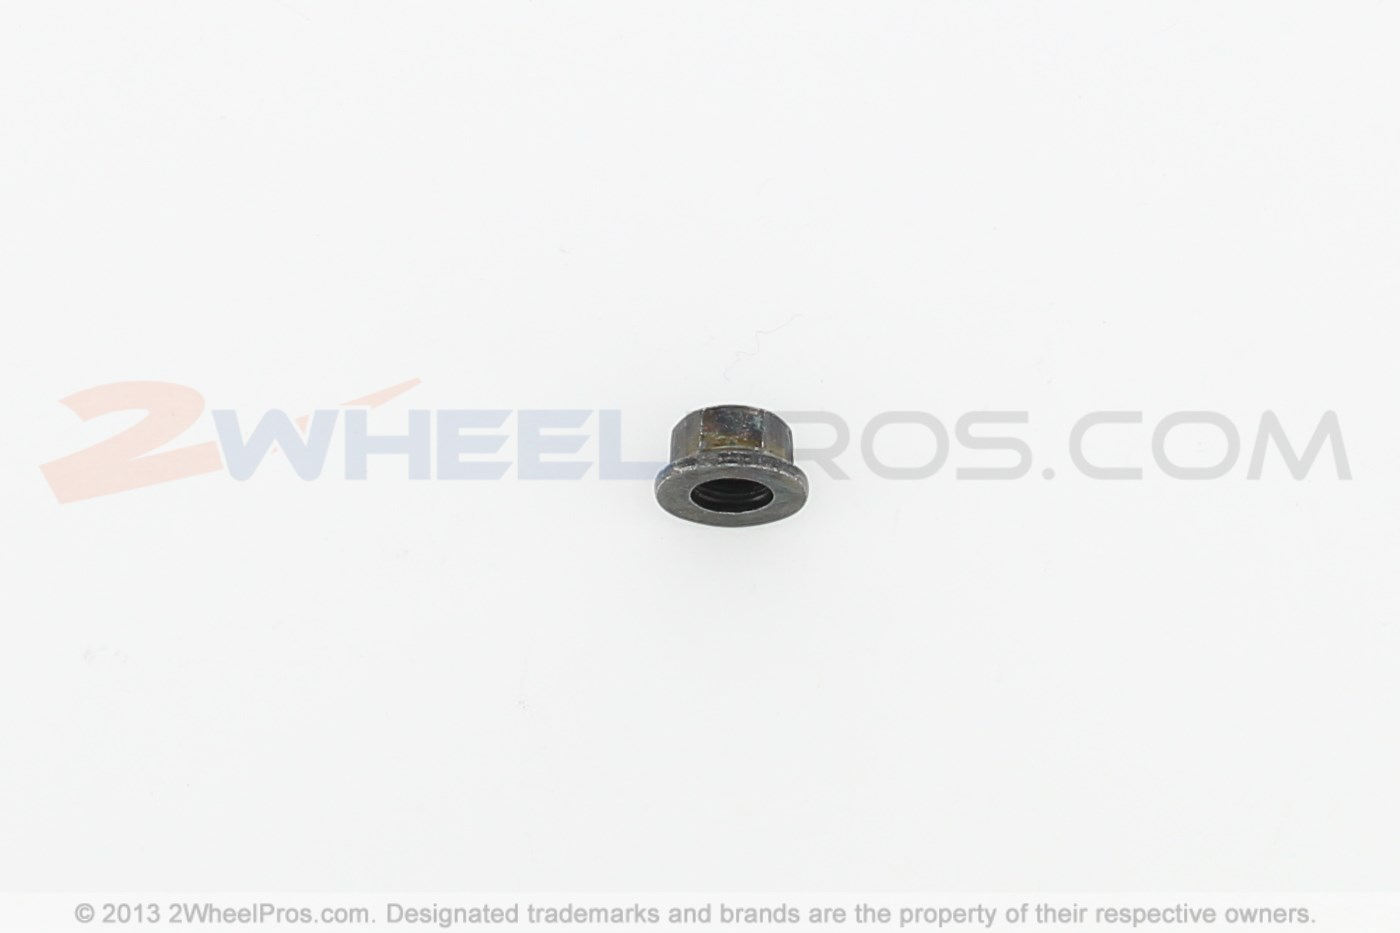 90179-10394-00 Yamaha Nut, Spec'l Shape $4.04